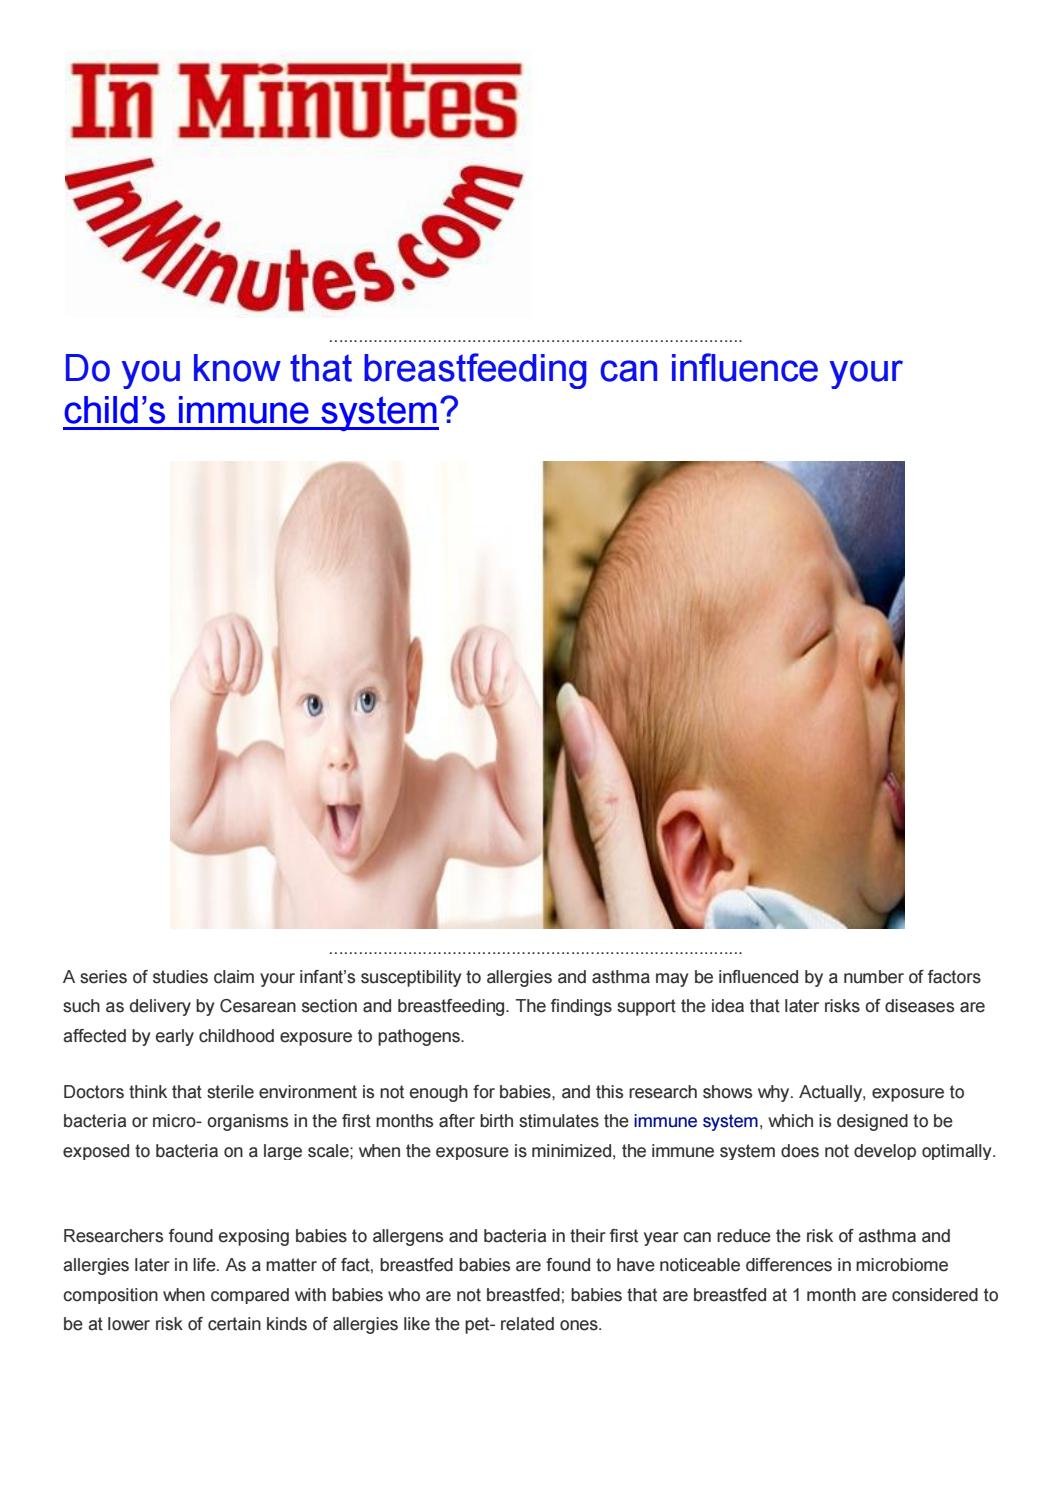 Birth Date May Influence Childs Risk >> Do You Know That Breastfeeding Can Influence Your Child By Health